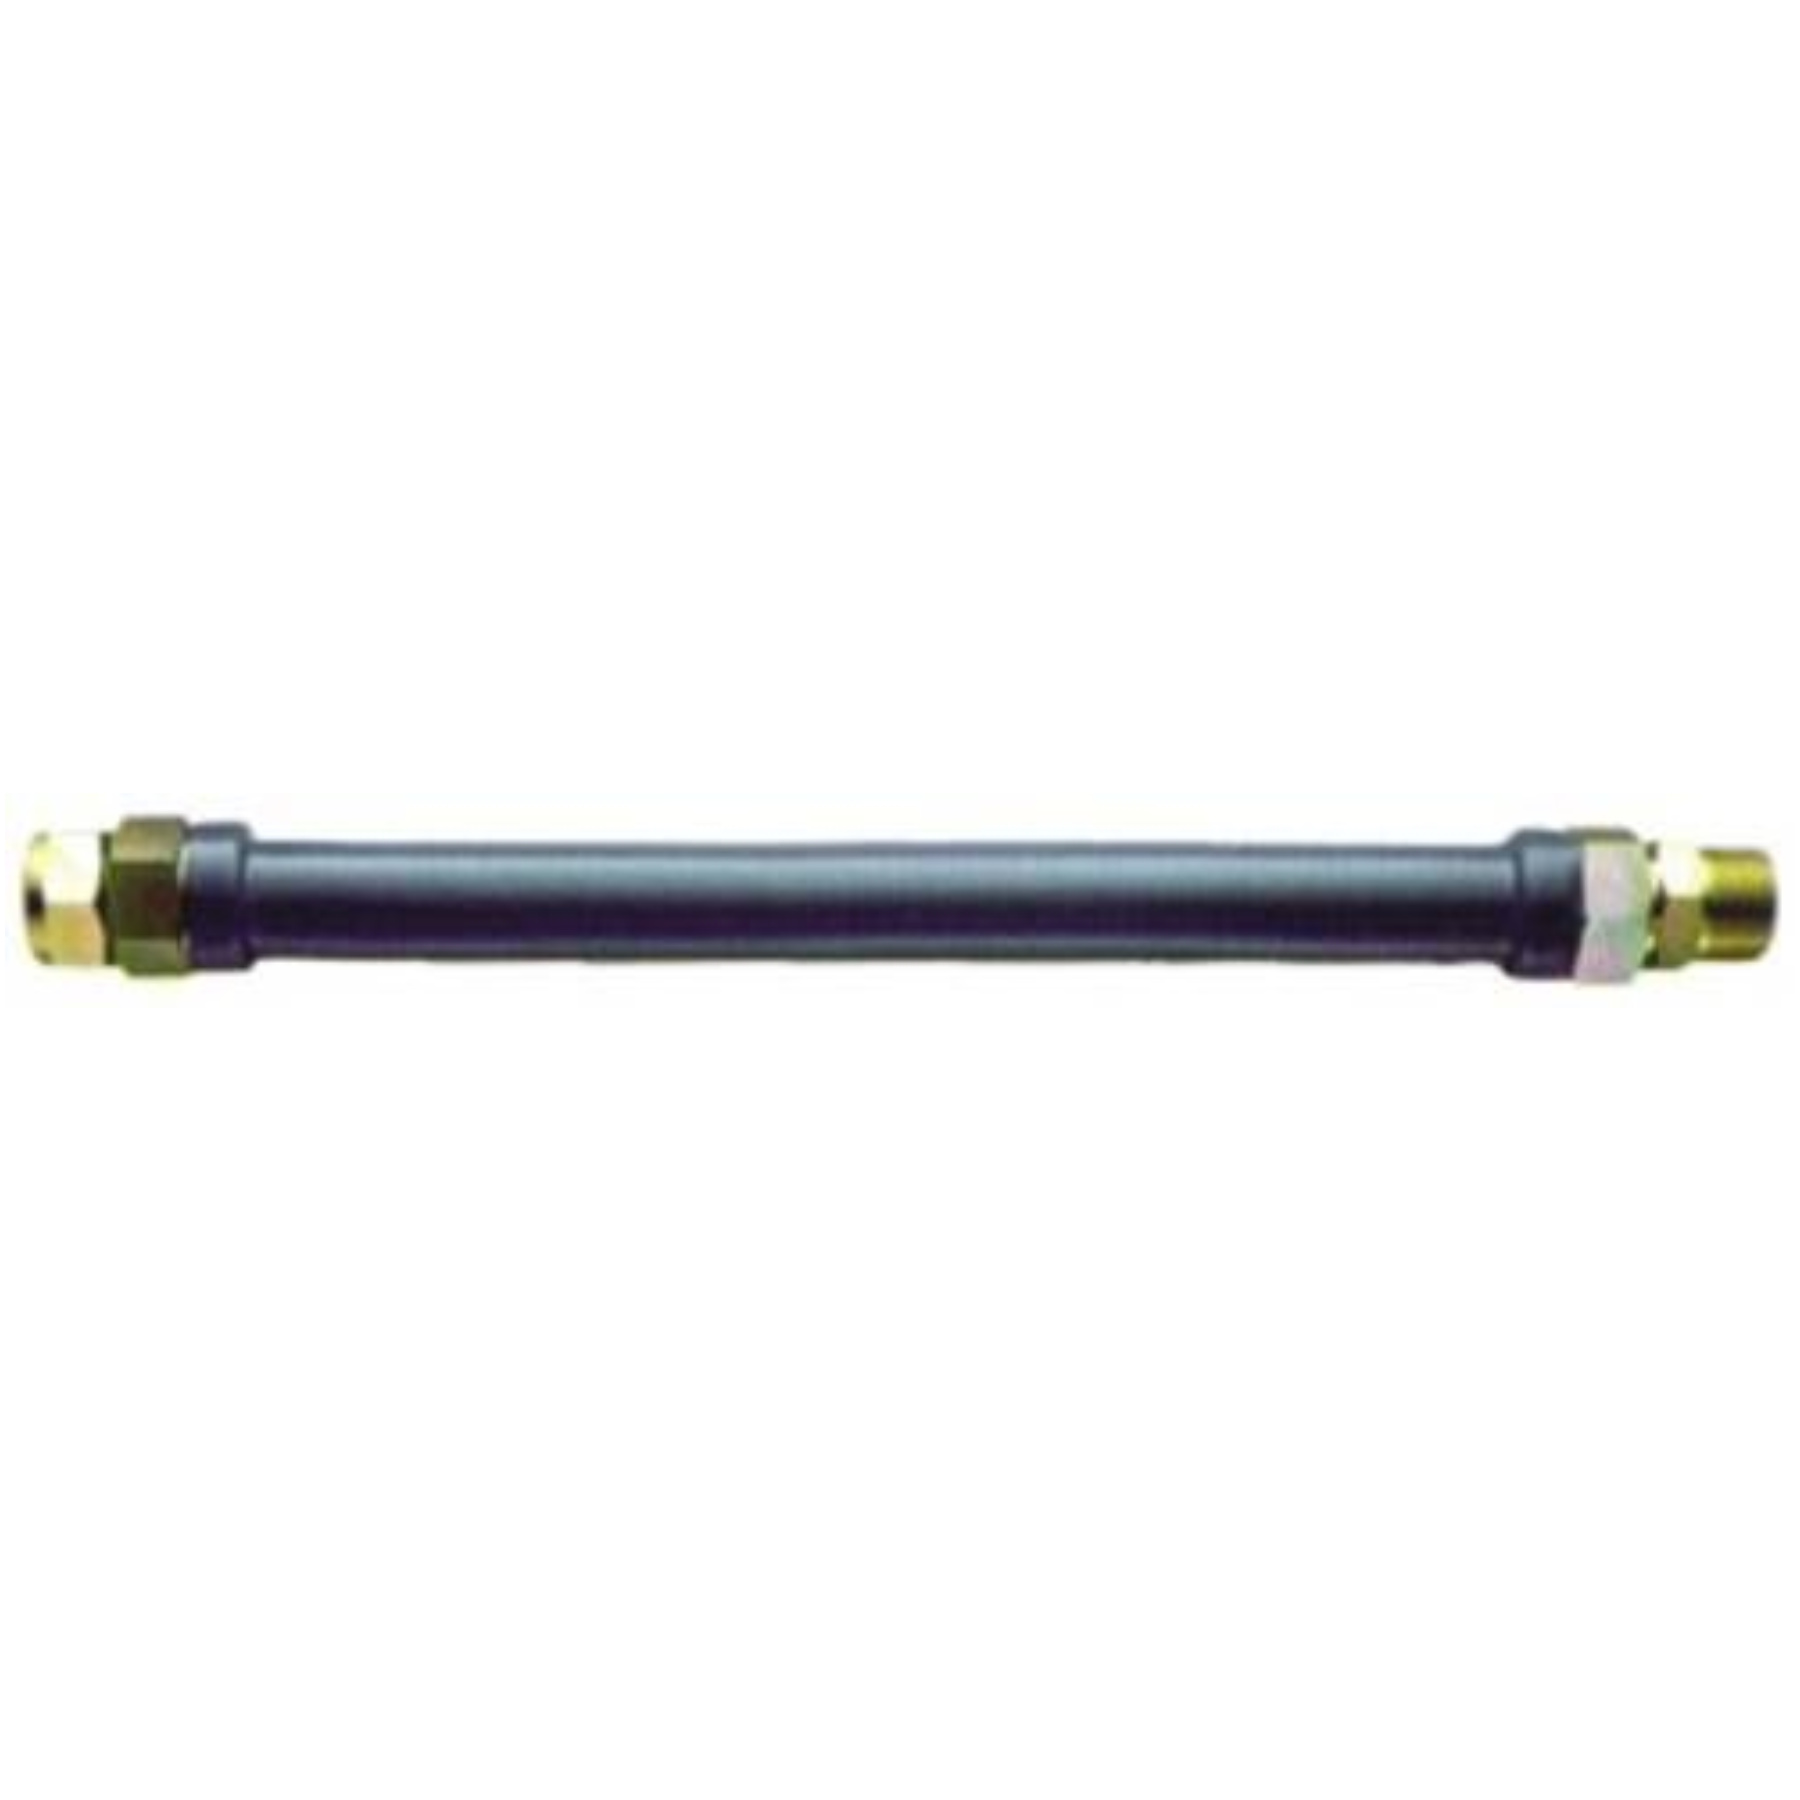 GAS CONNECTOR COATED STAINLESS STEEL 24 IN.